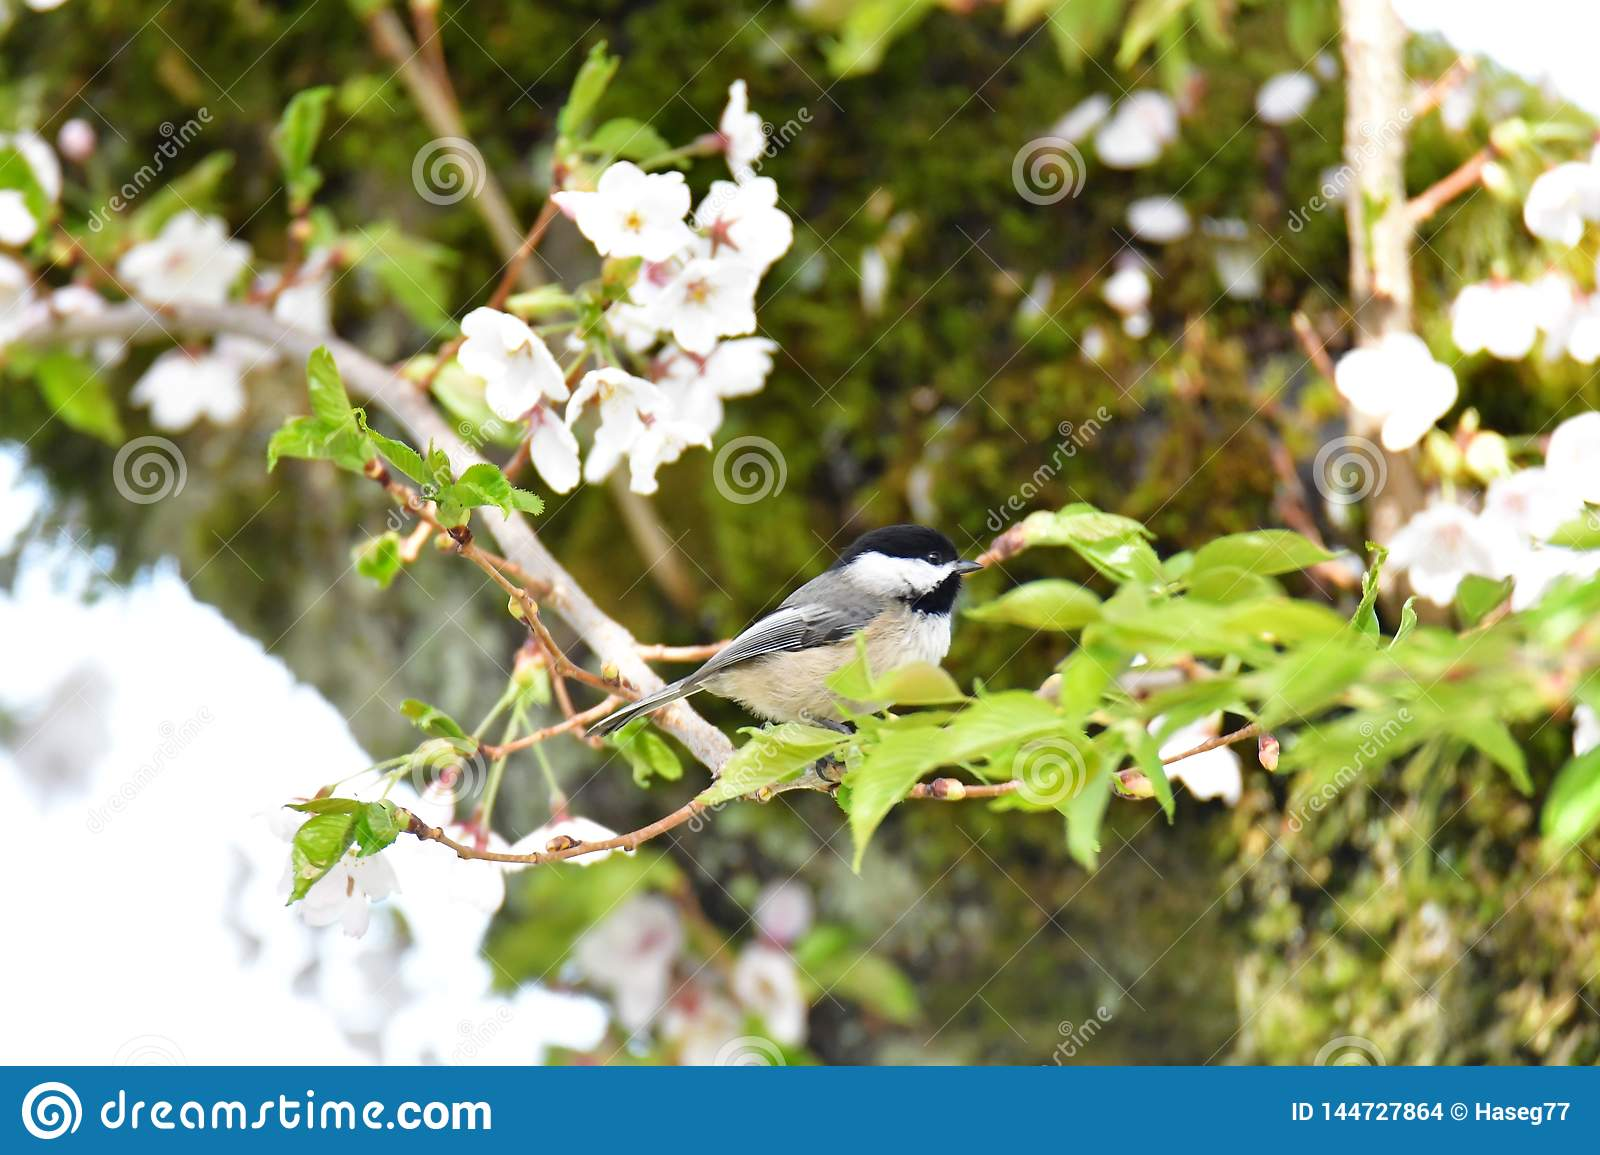 Black capped chickadee in cherry blossom